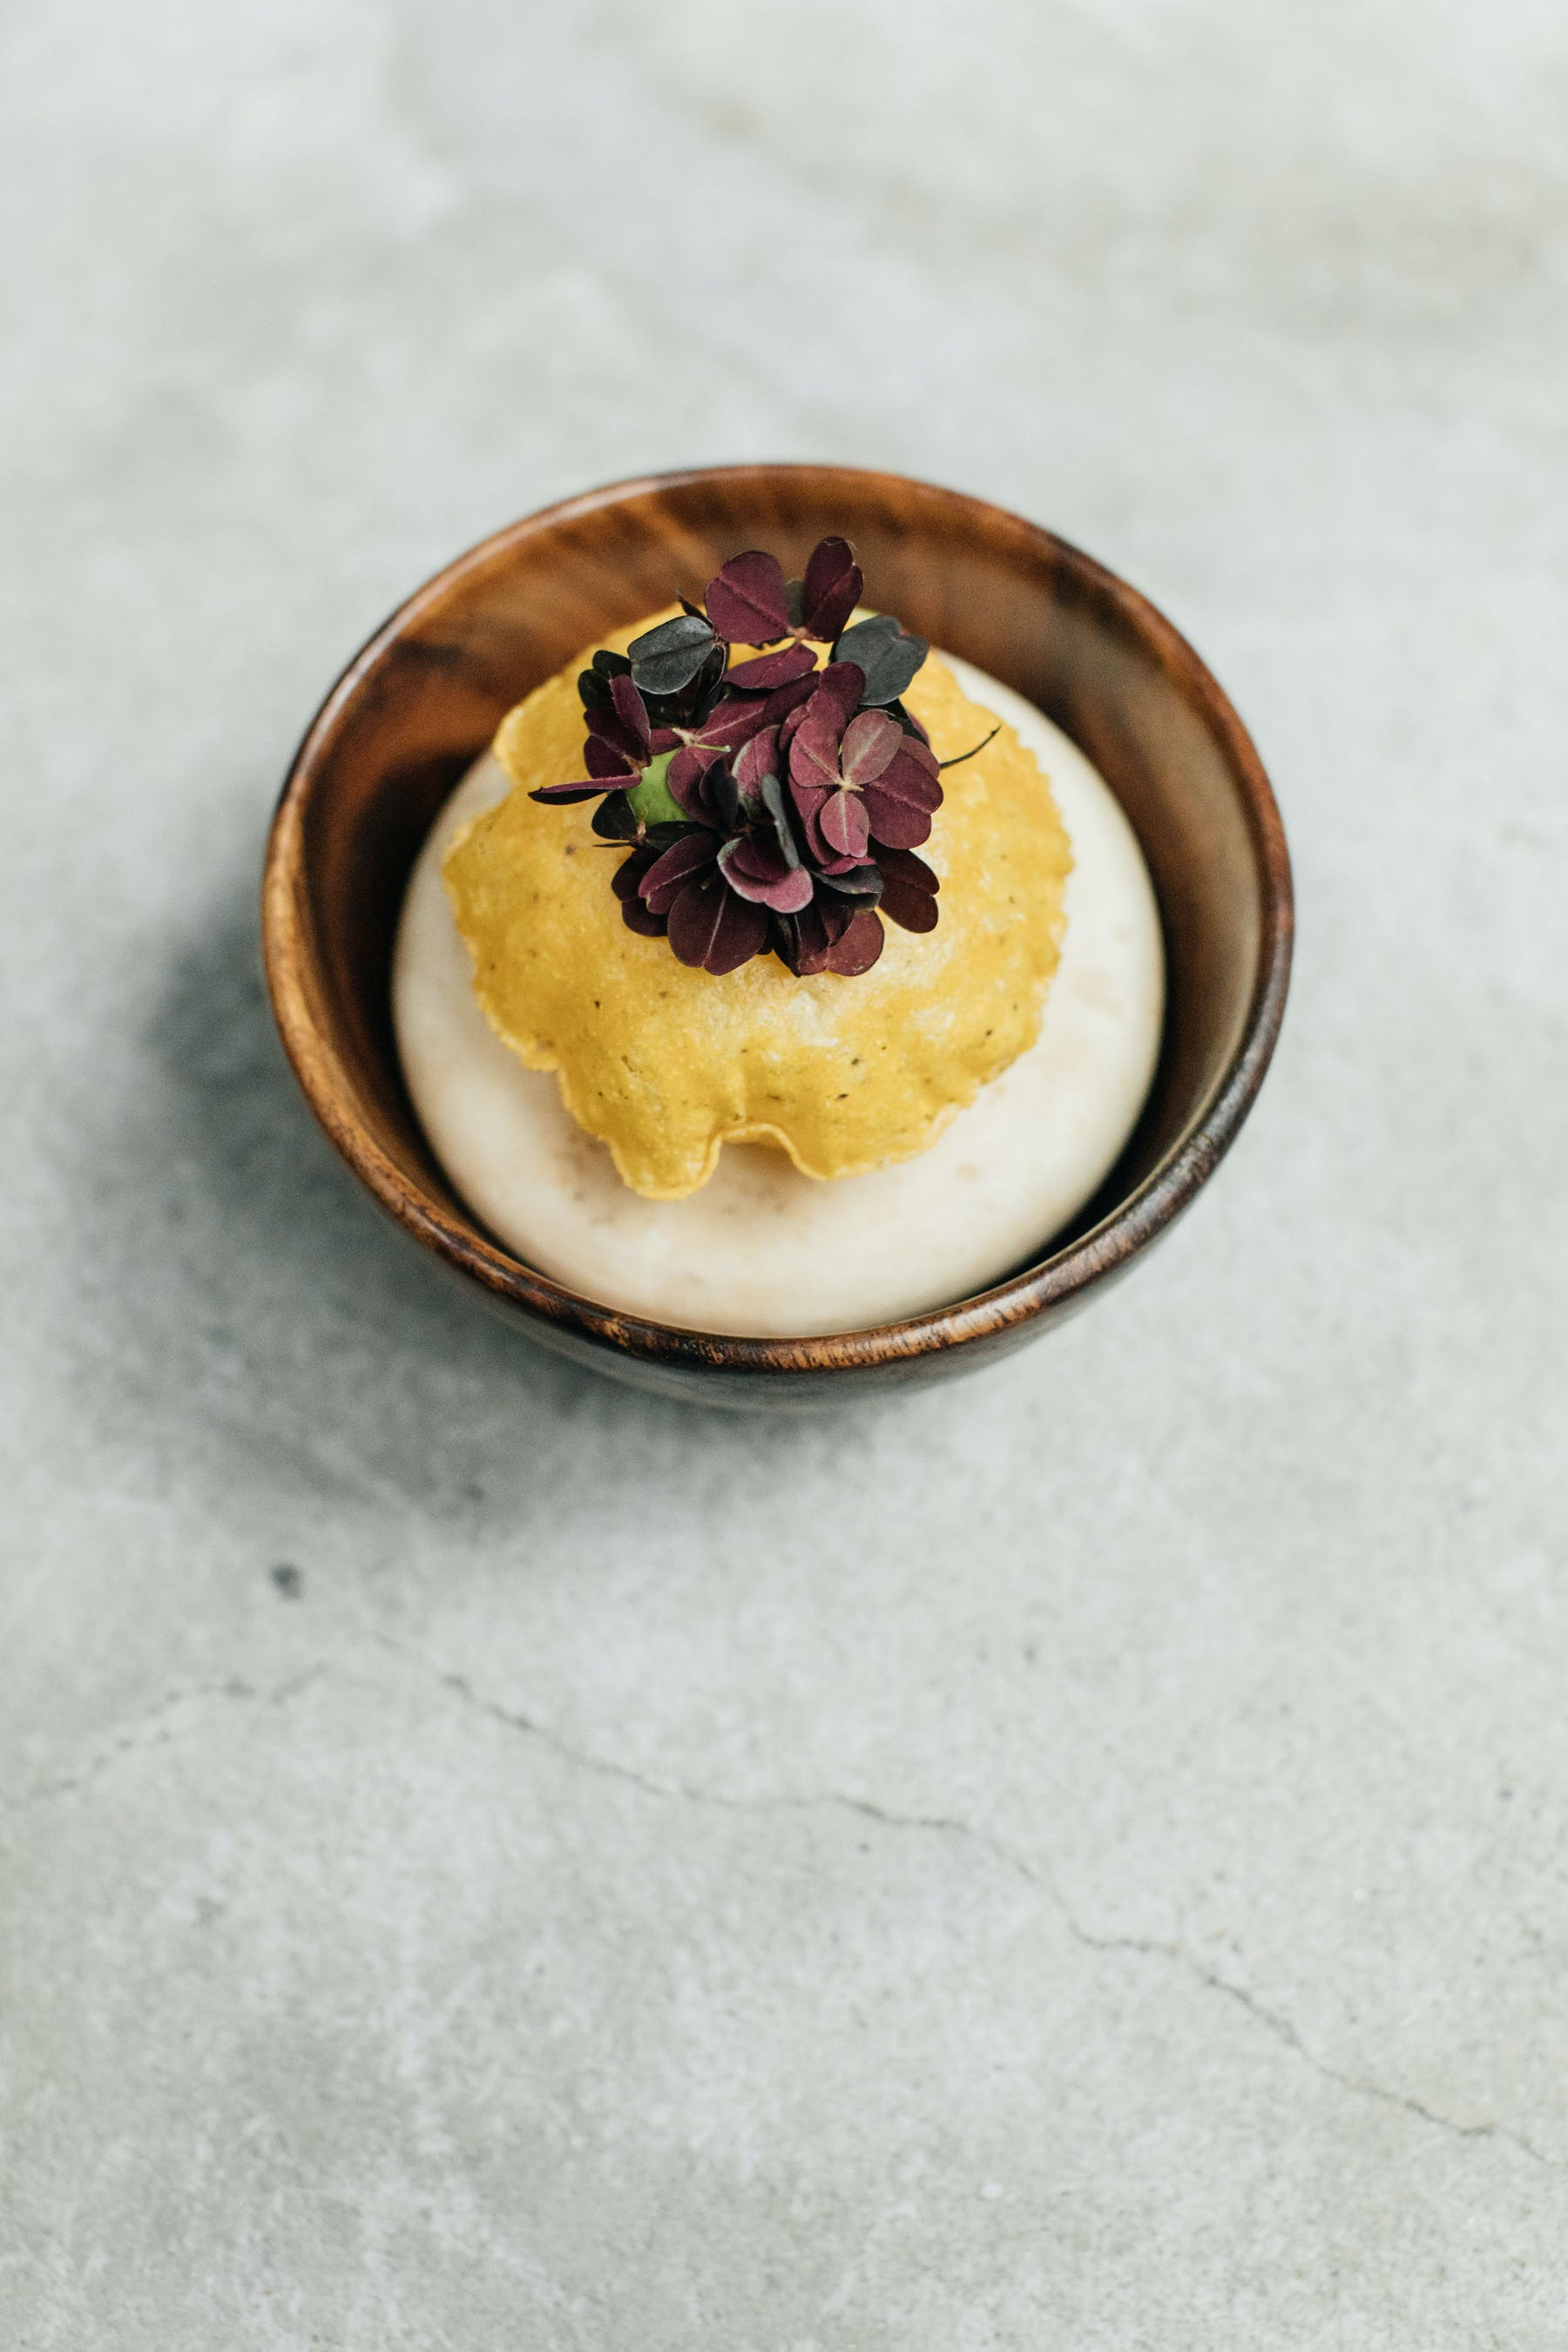 bowl with yellow and white food